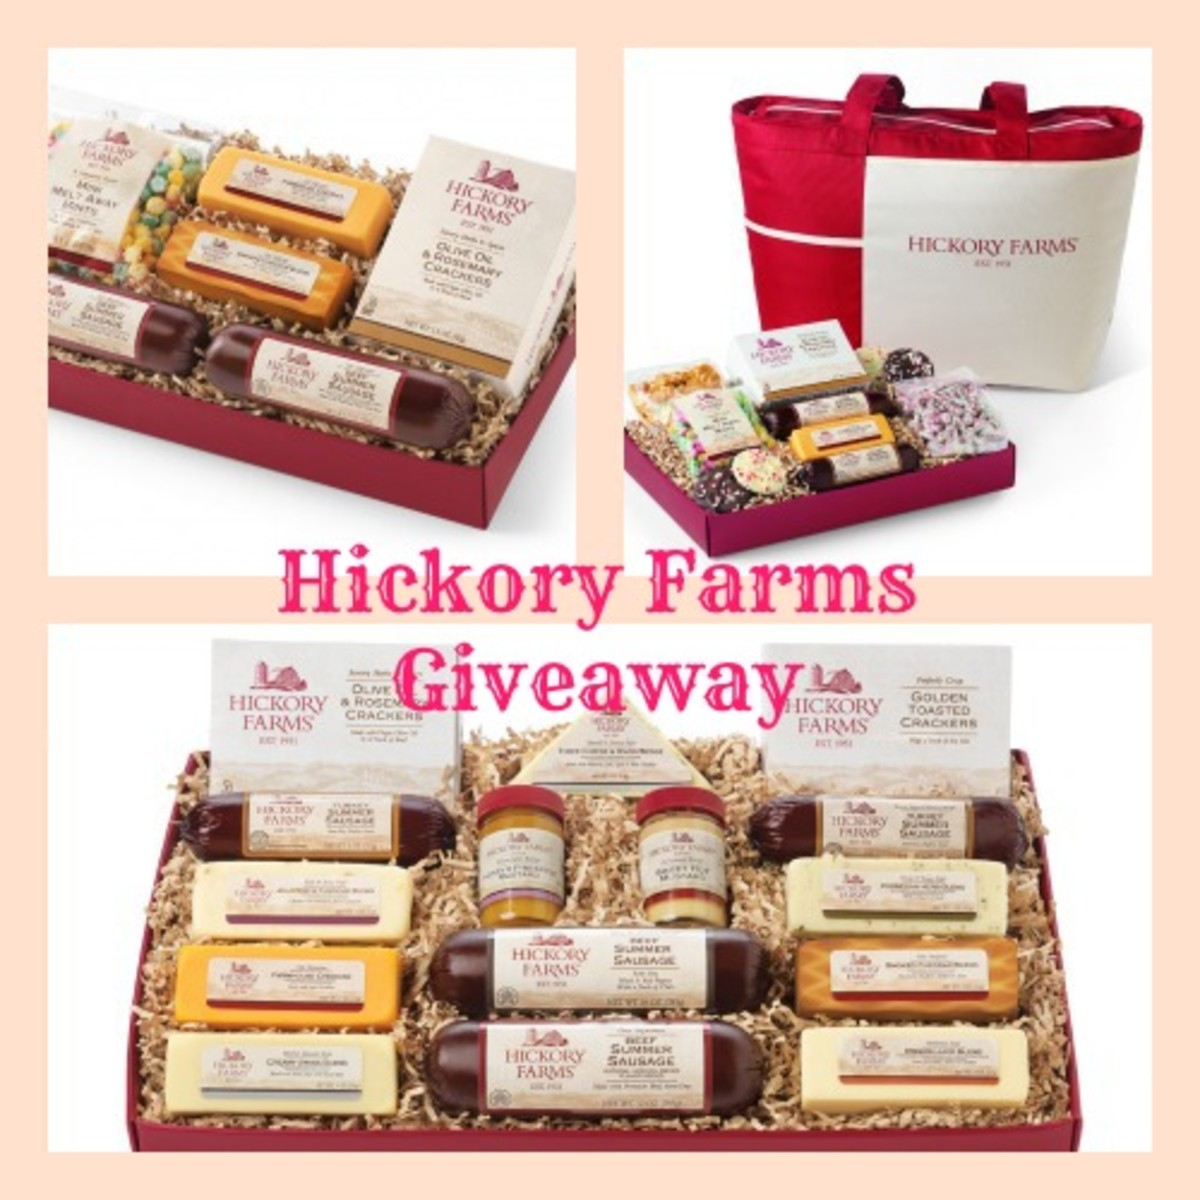 Hickory farms, Hickory farms giveaway